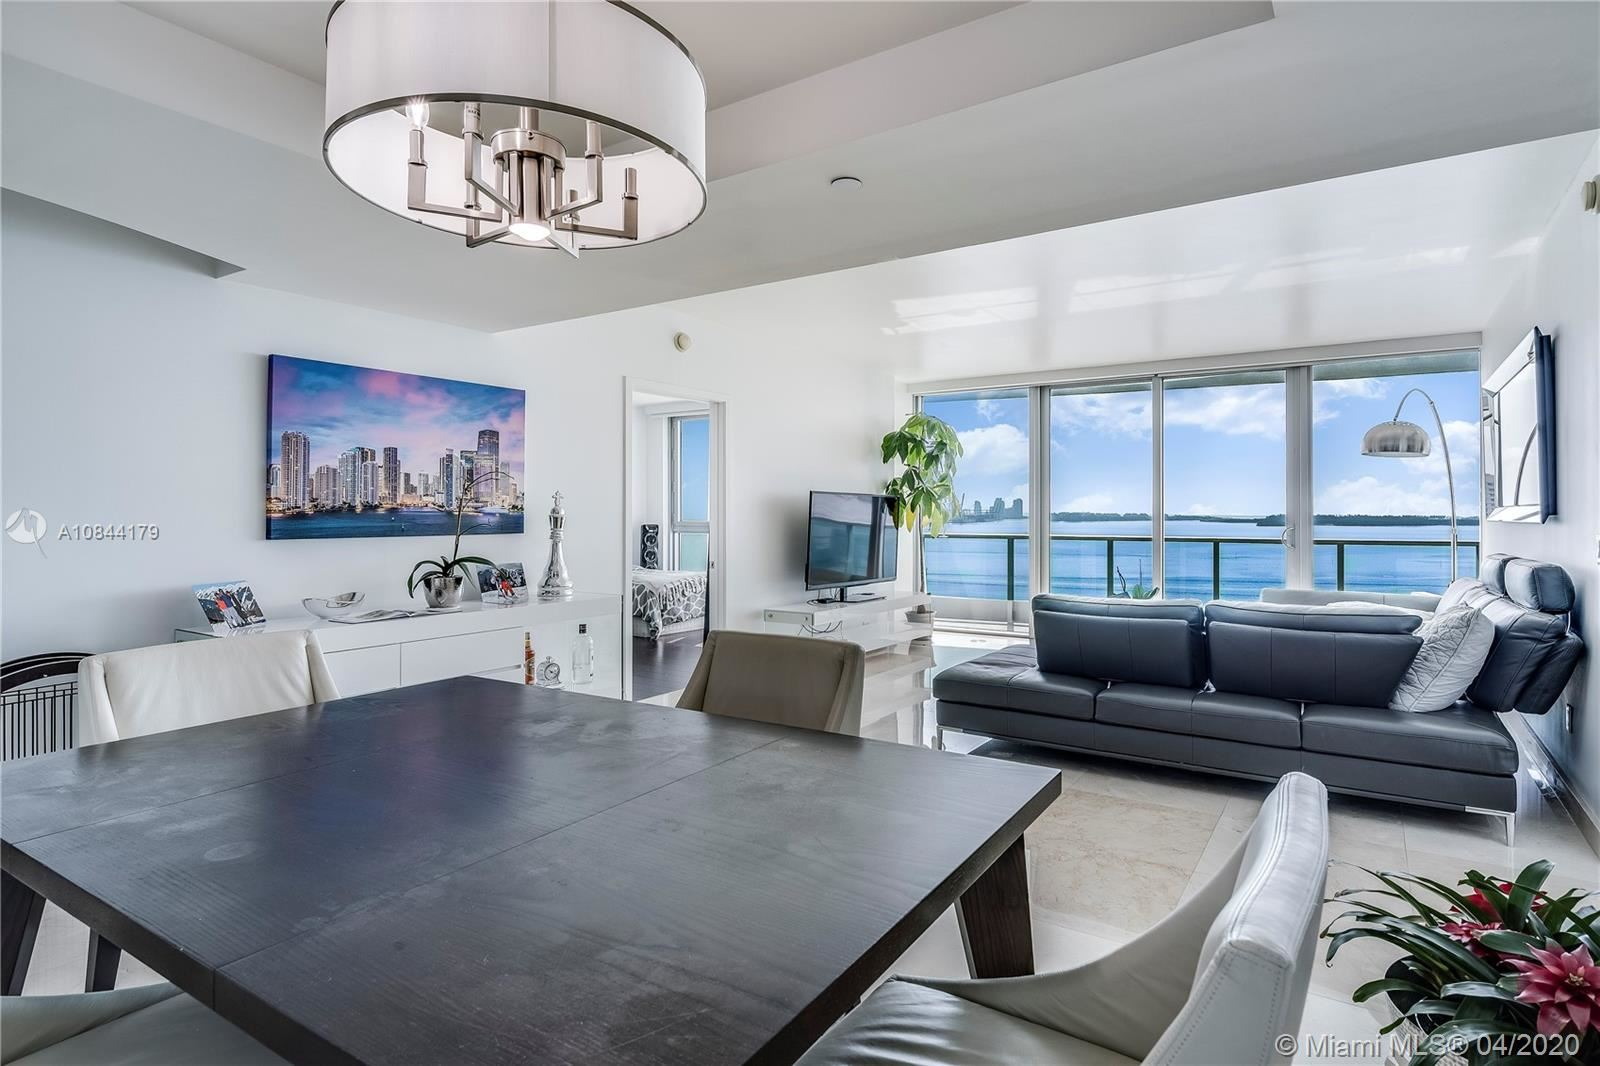 Photo of 1331 Brickell Bay Dr #1403, Miami, FL 33131 (MLS # A10844179)